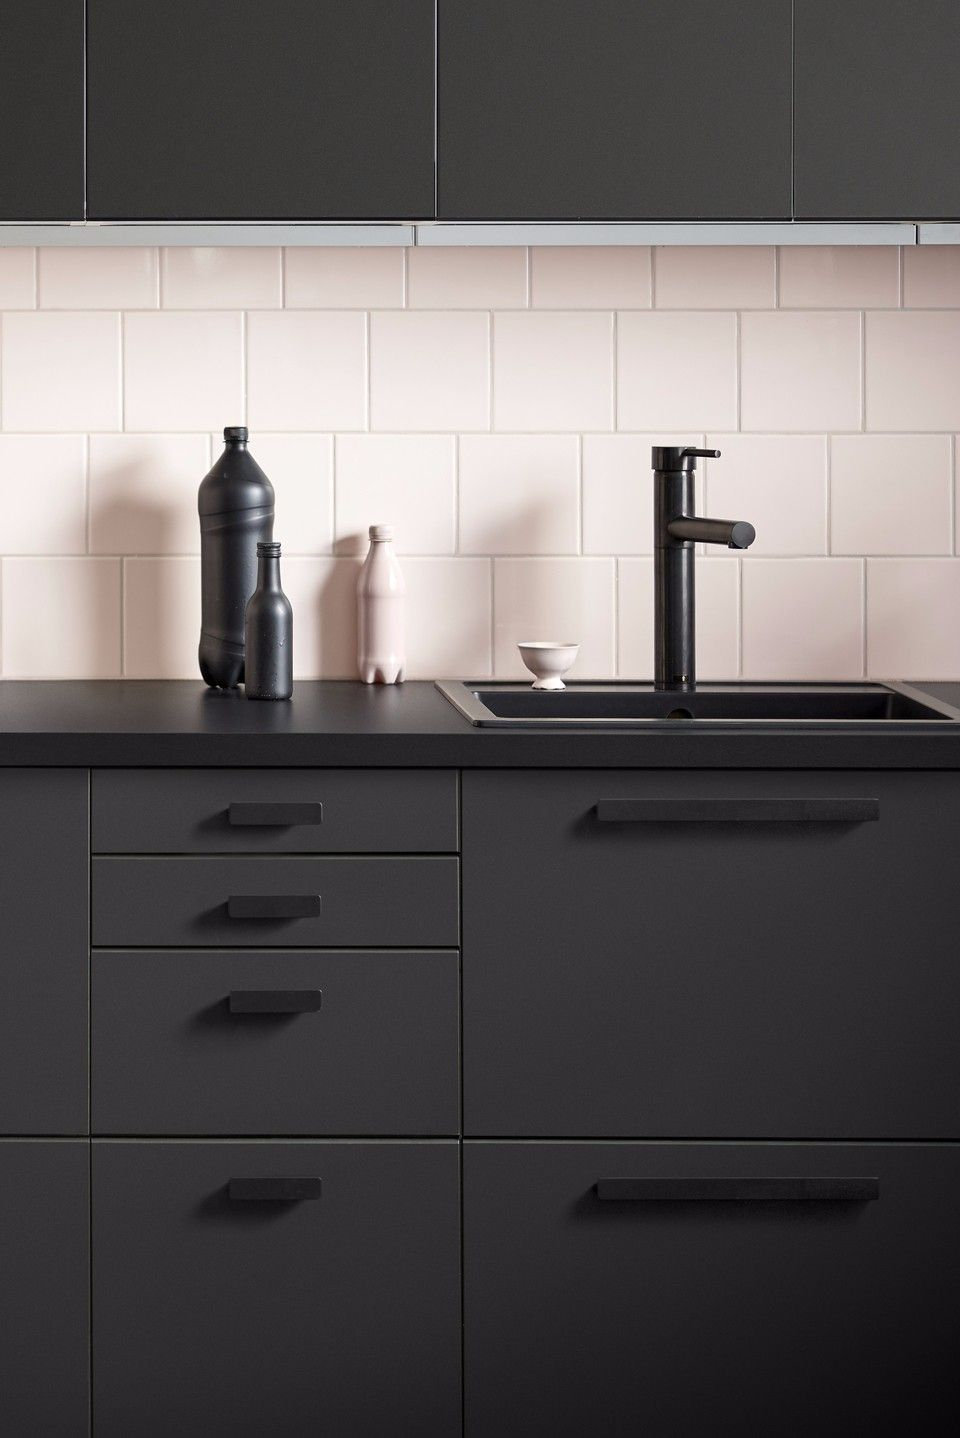 Ikea Kungsbacka Kitchen But With Lighter Counter And Handles Would Not Do A Busy Floor With Dark Sleek Kitchen Cabinets Sleek Kitchen Black Kitchen Cabinets